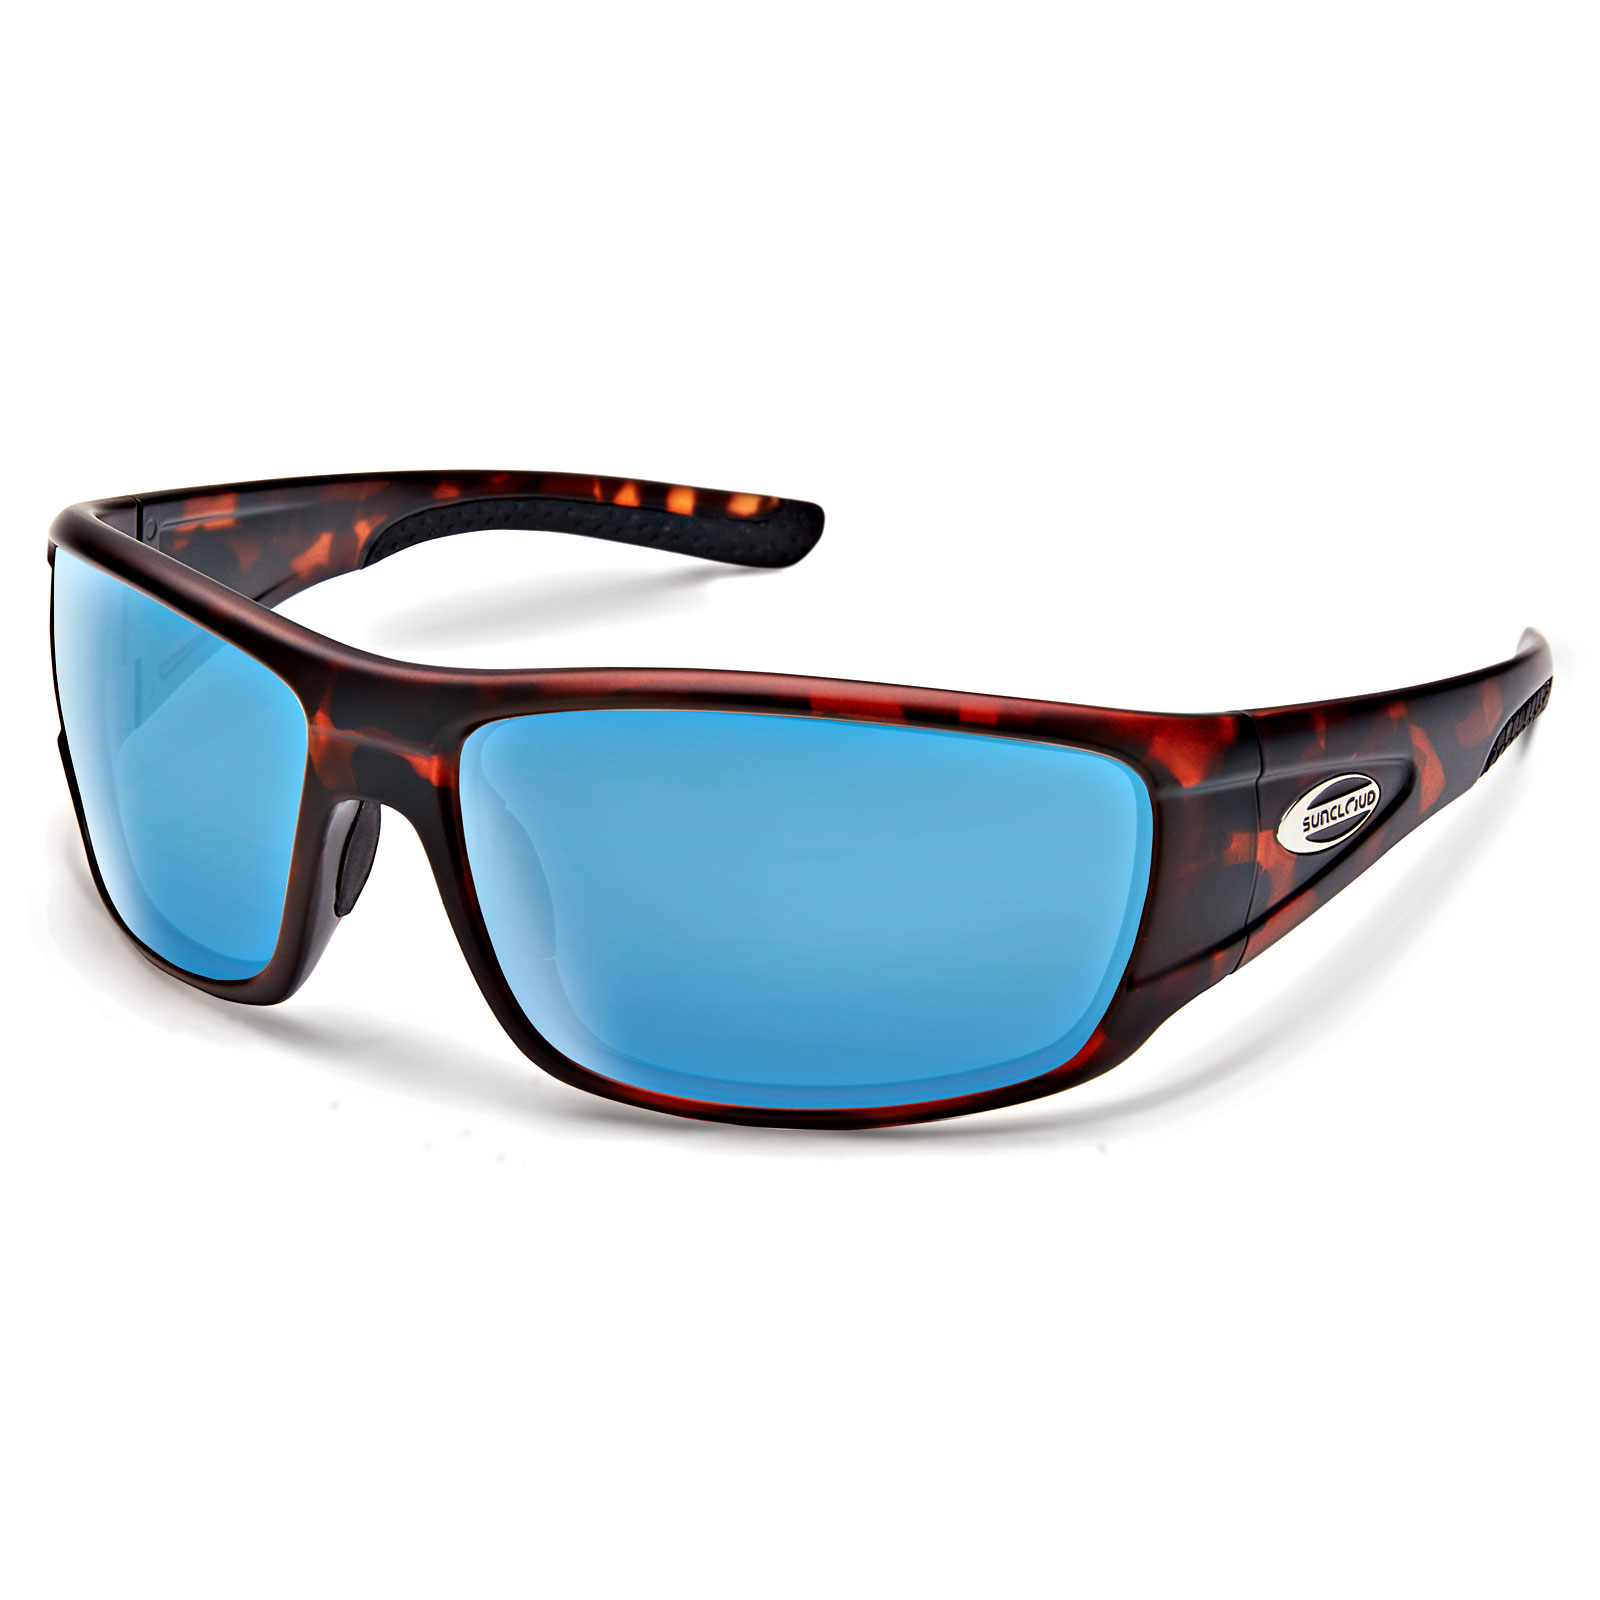 0208cc2619 Suncloud Sunglasses Tribute Matte Tortoise Blue Mirror Polarized Large Fit.  About this product. Picture 1 of 2  Picture 2 of 2